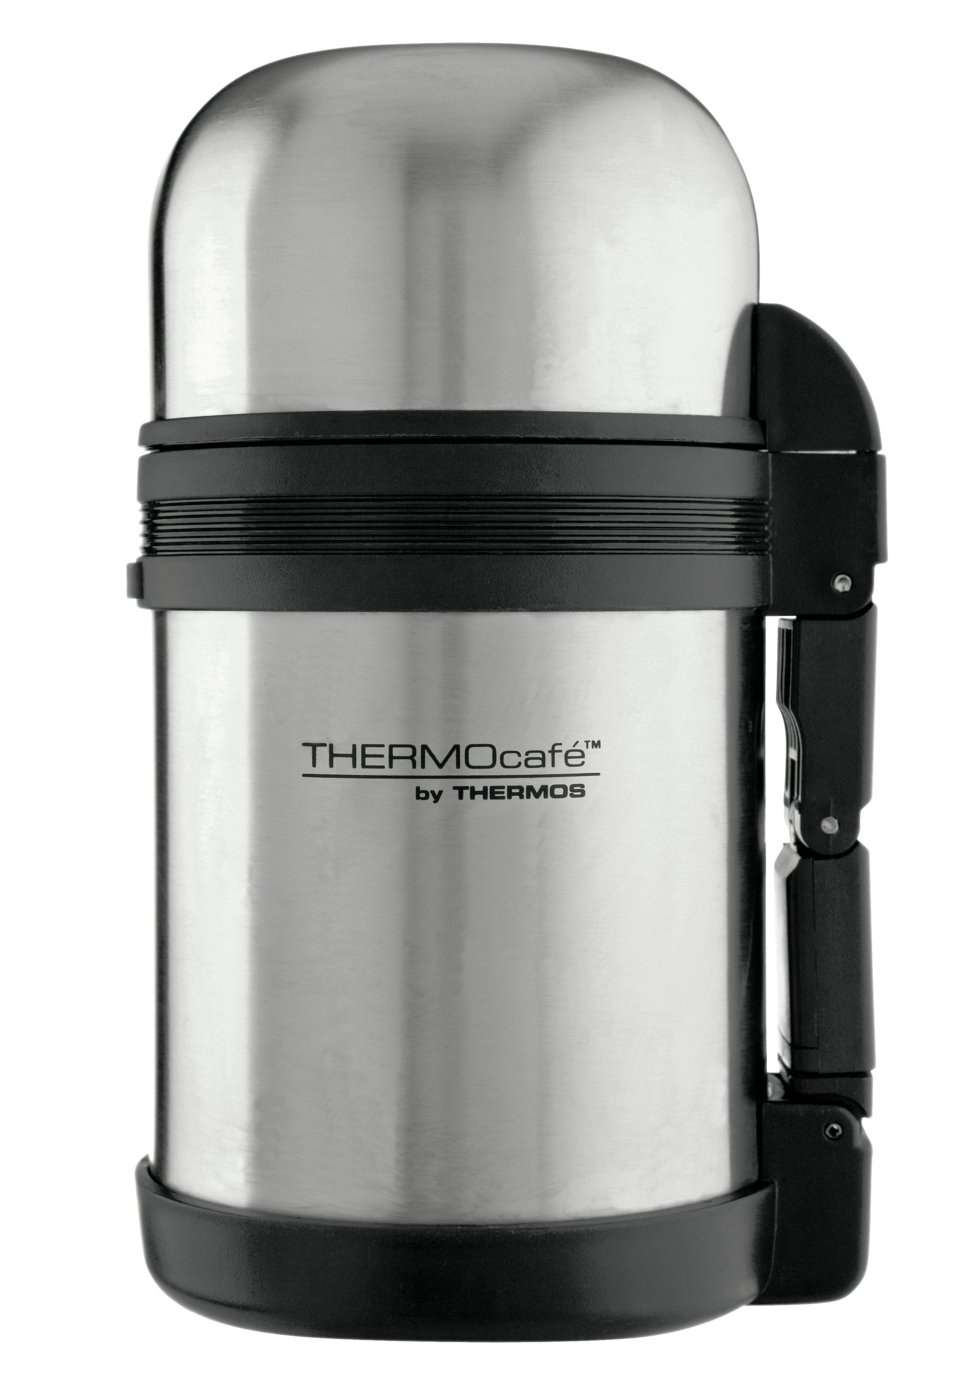 Thermos Stainless Steel Food and Drink Flask review